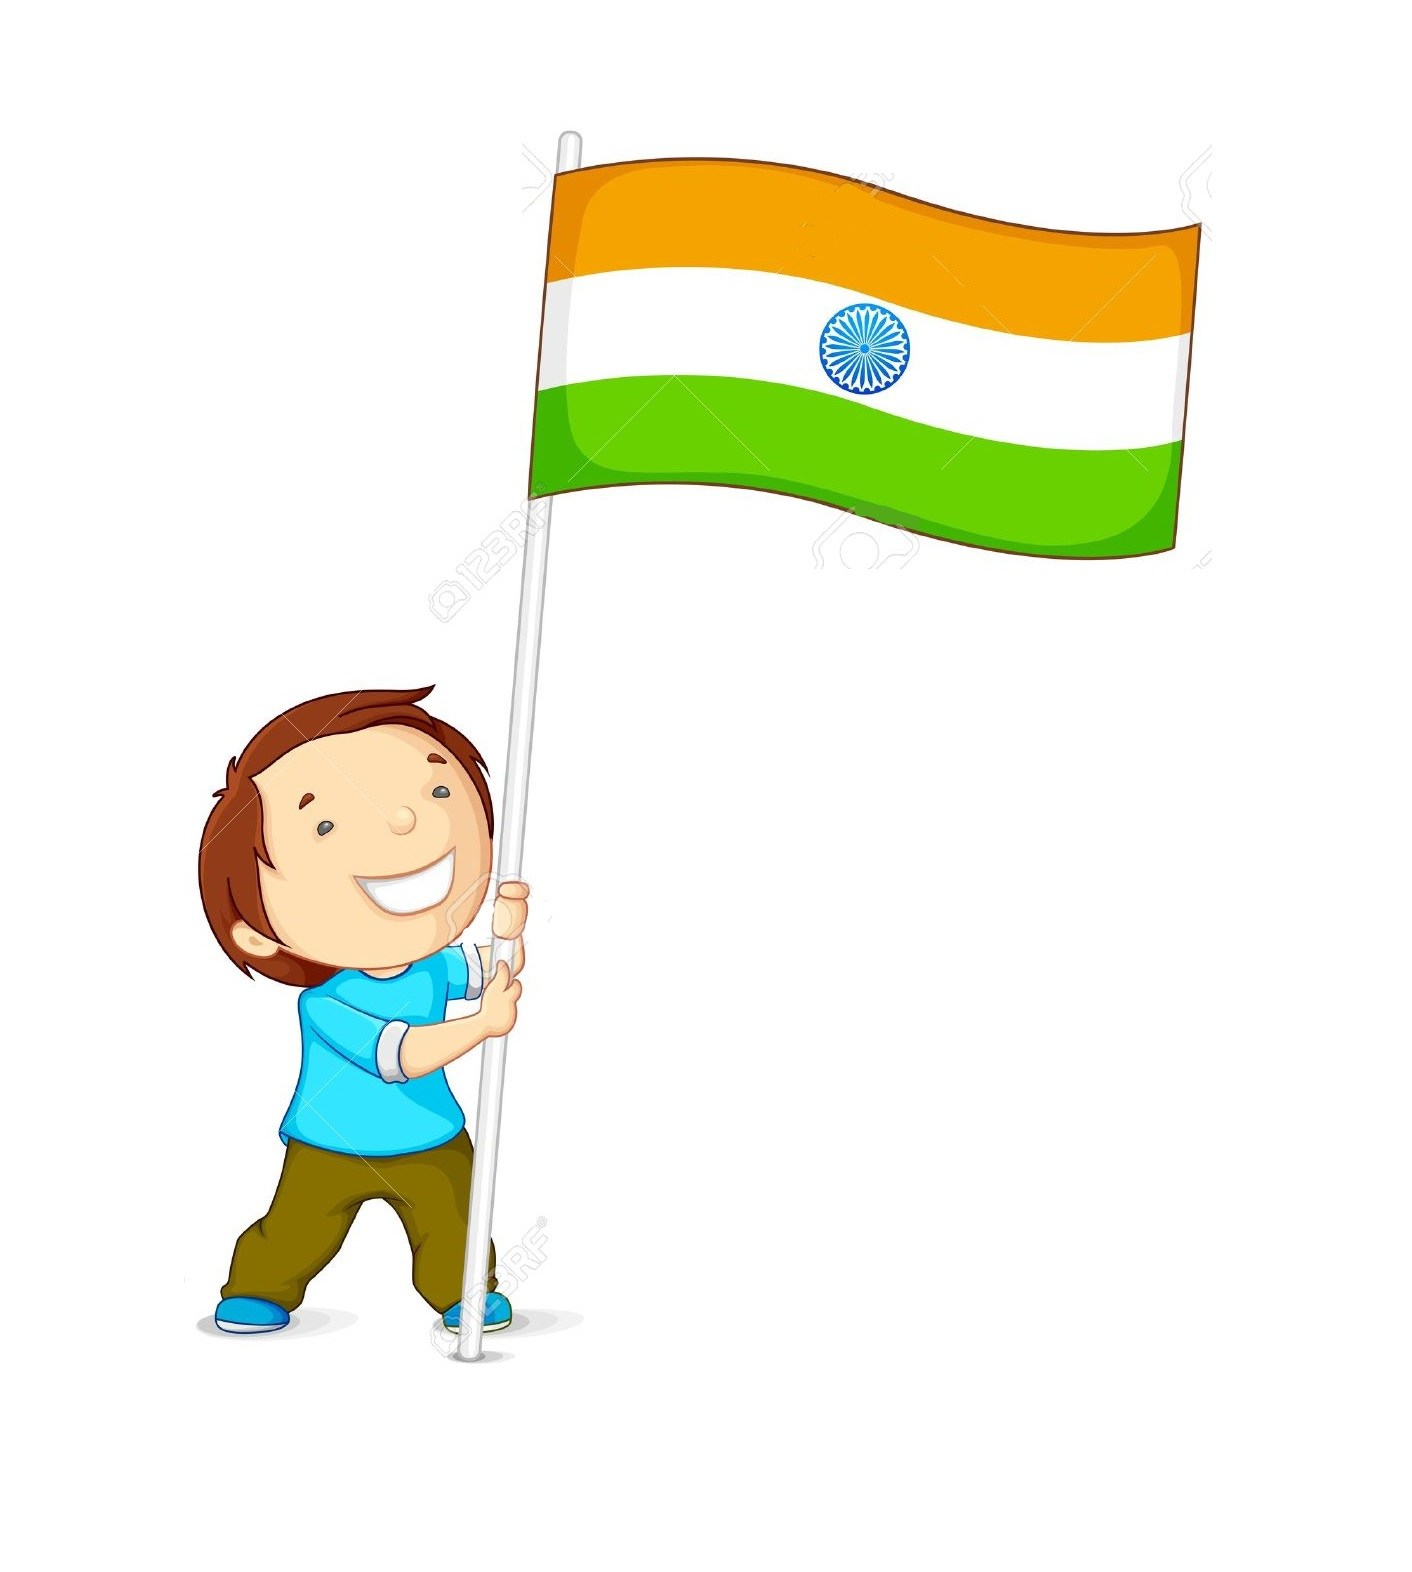 India independence day clipart clip art download Independence Clipart | Free download best Independence ... clip art download